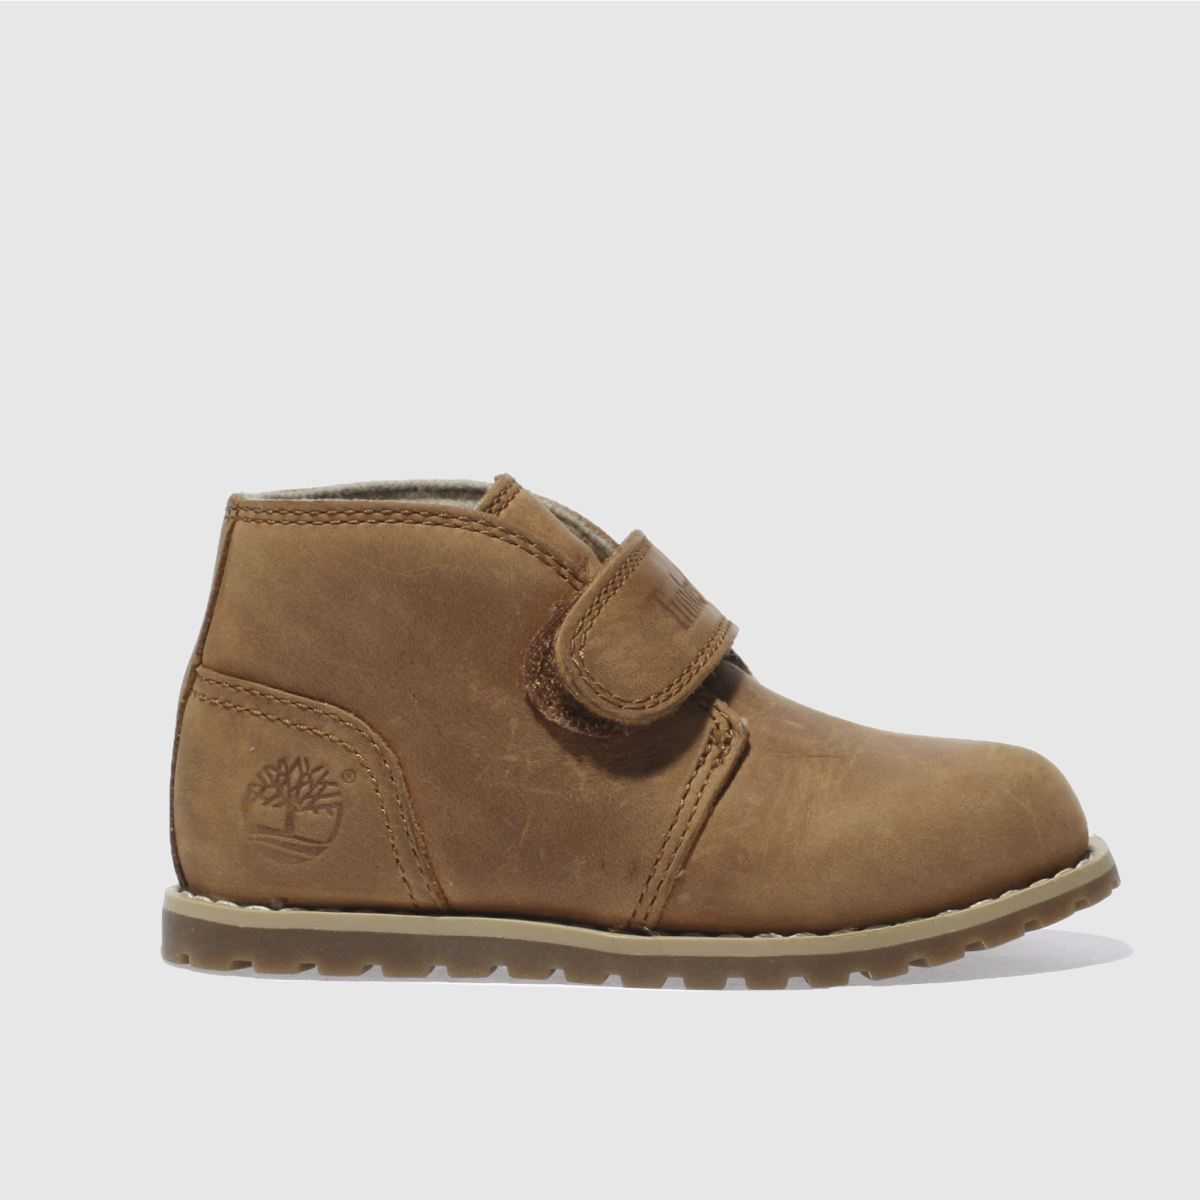 timberland tan pokey pine Boys Toddler Boots